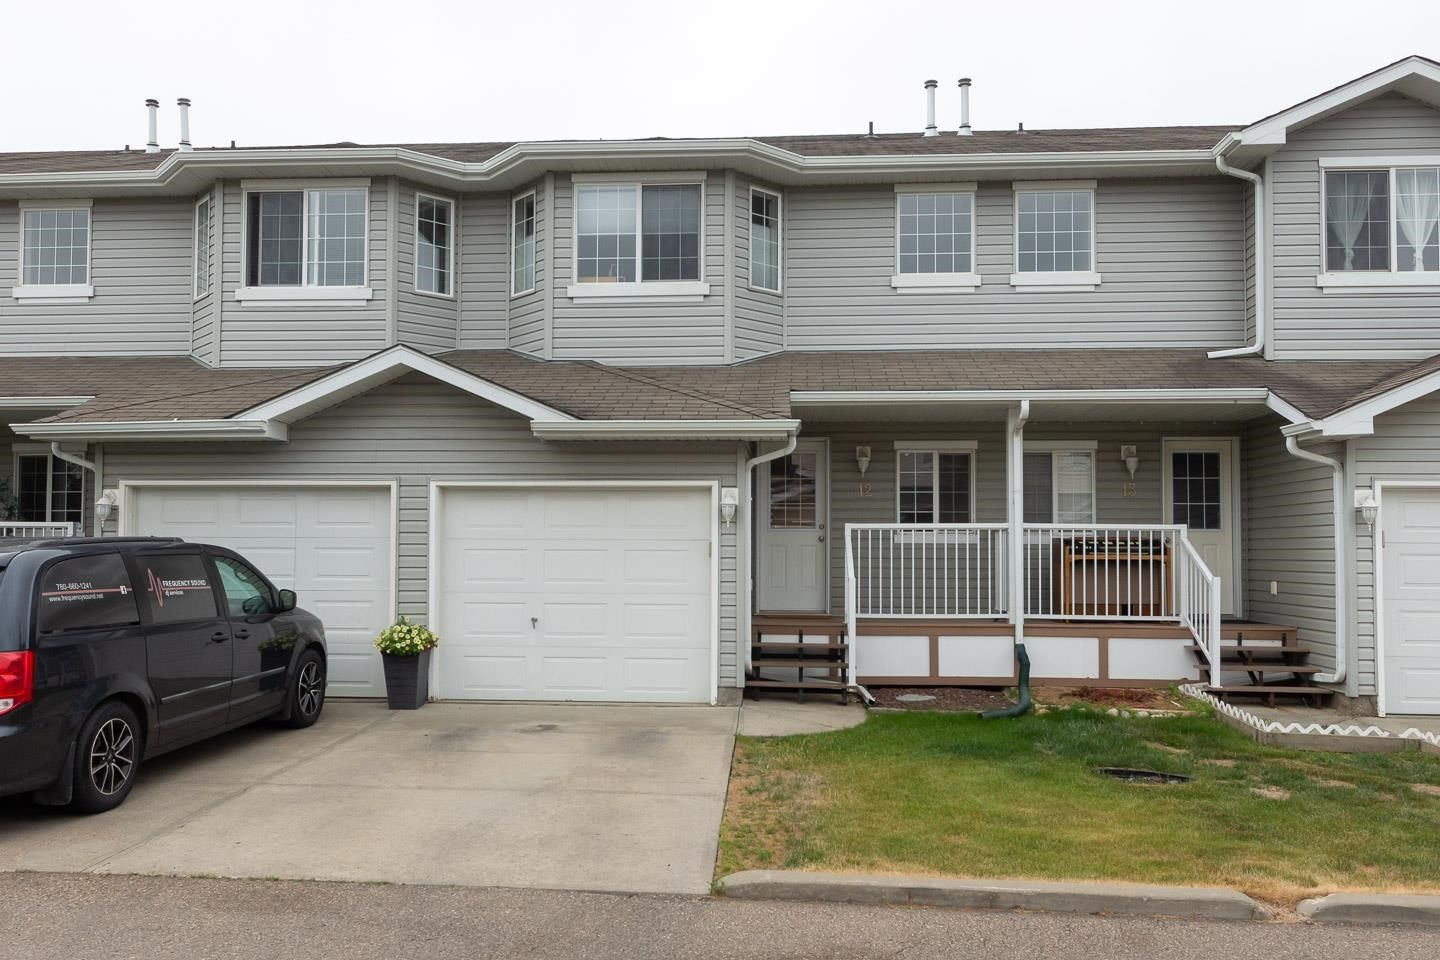 Main Photo: 12 380 SILVER_BERRY Road in Edmonton: Zone 30 Townhouse for sale : MLS®# E4255808